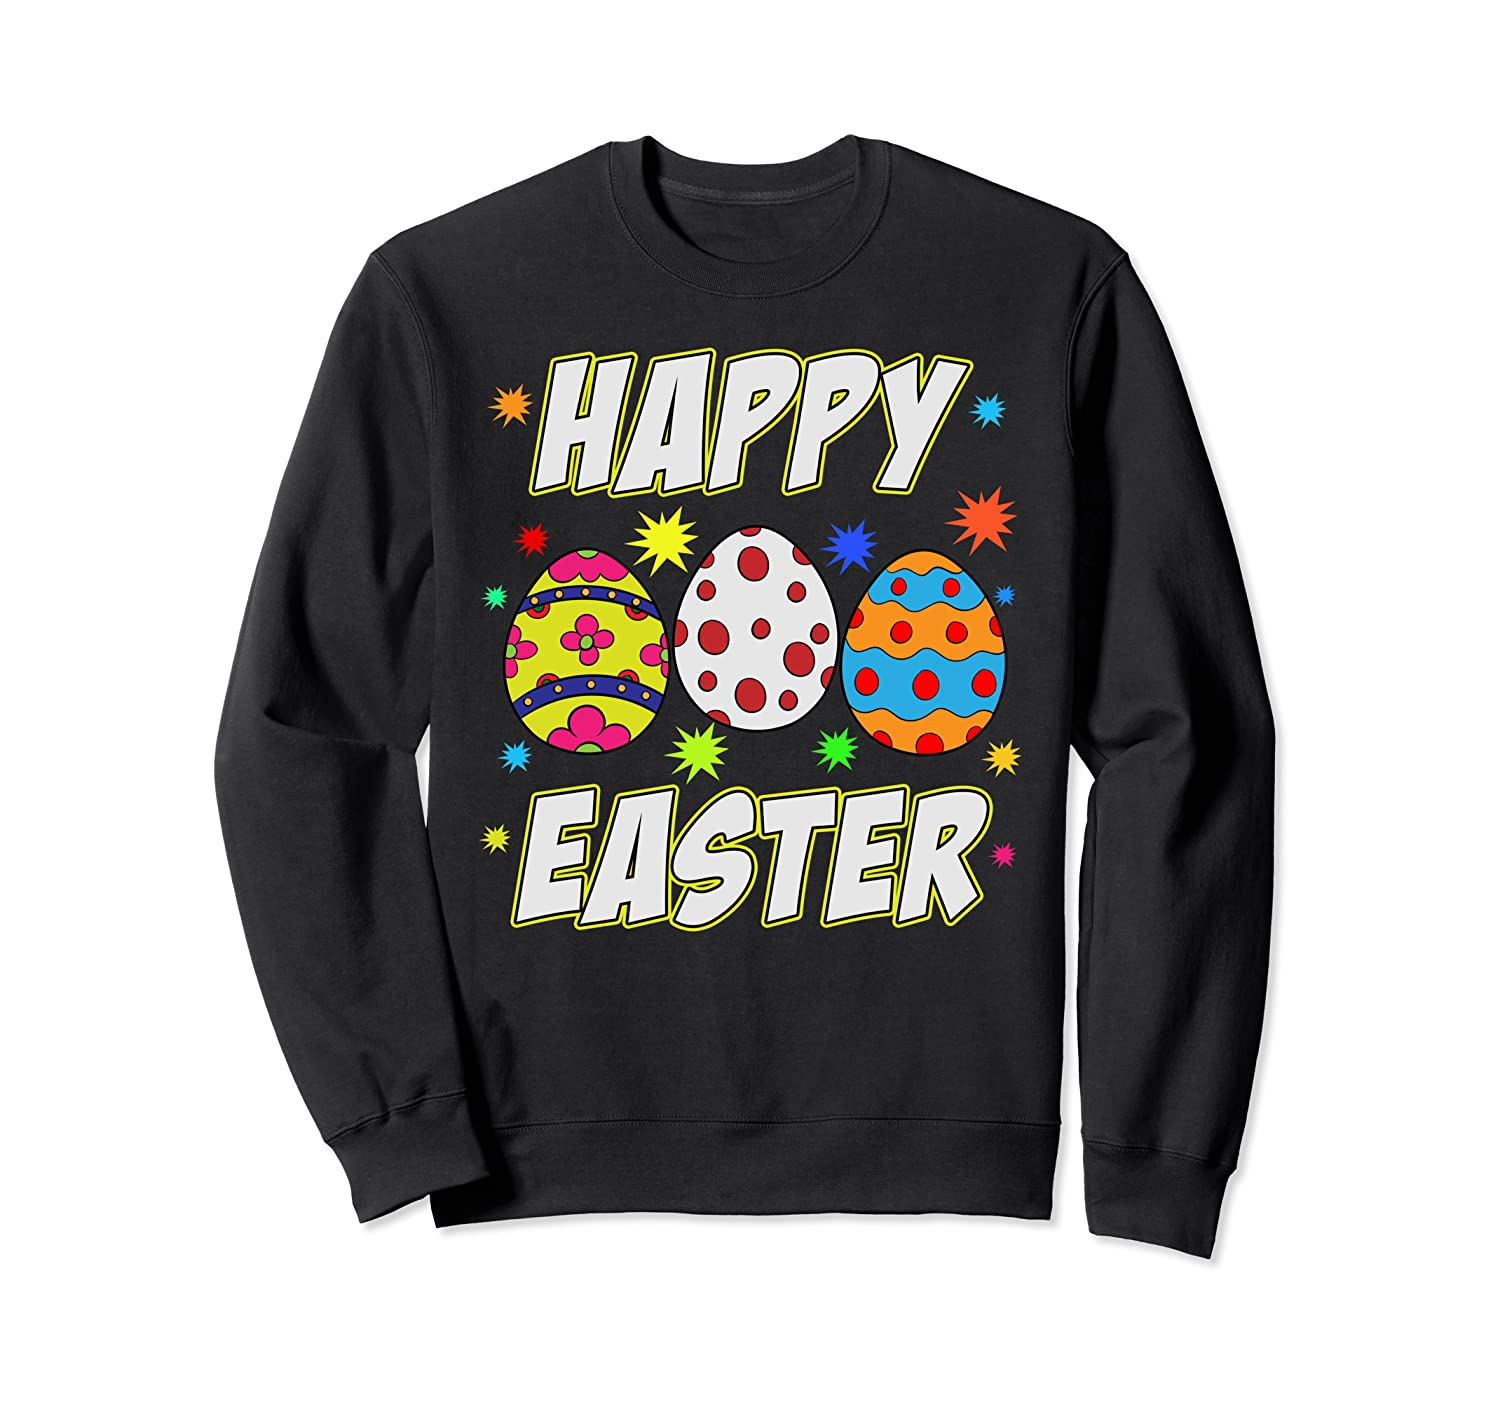 Happy Easter Day Colorful Egg Hunting Cute Easter Egg Sweatshirt